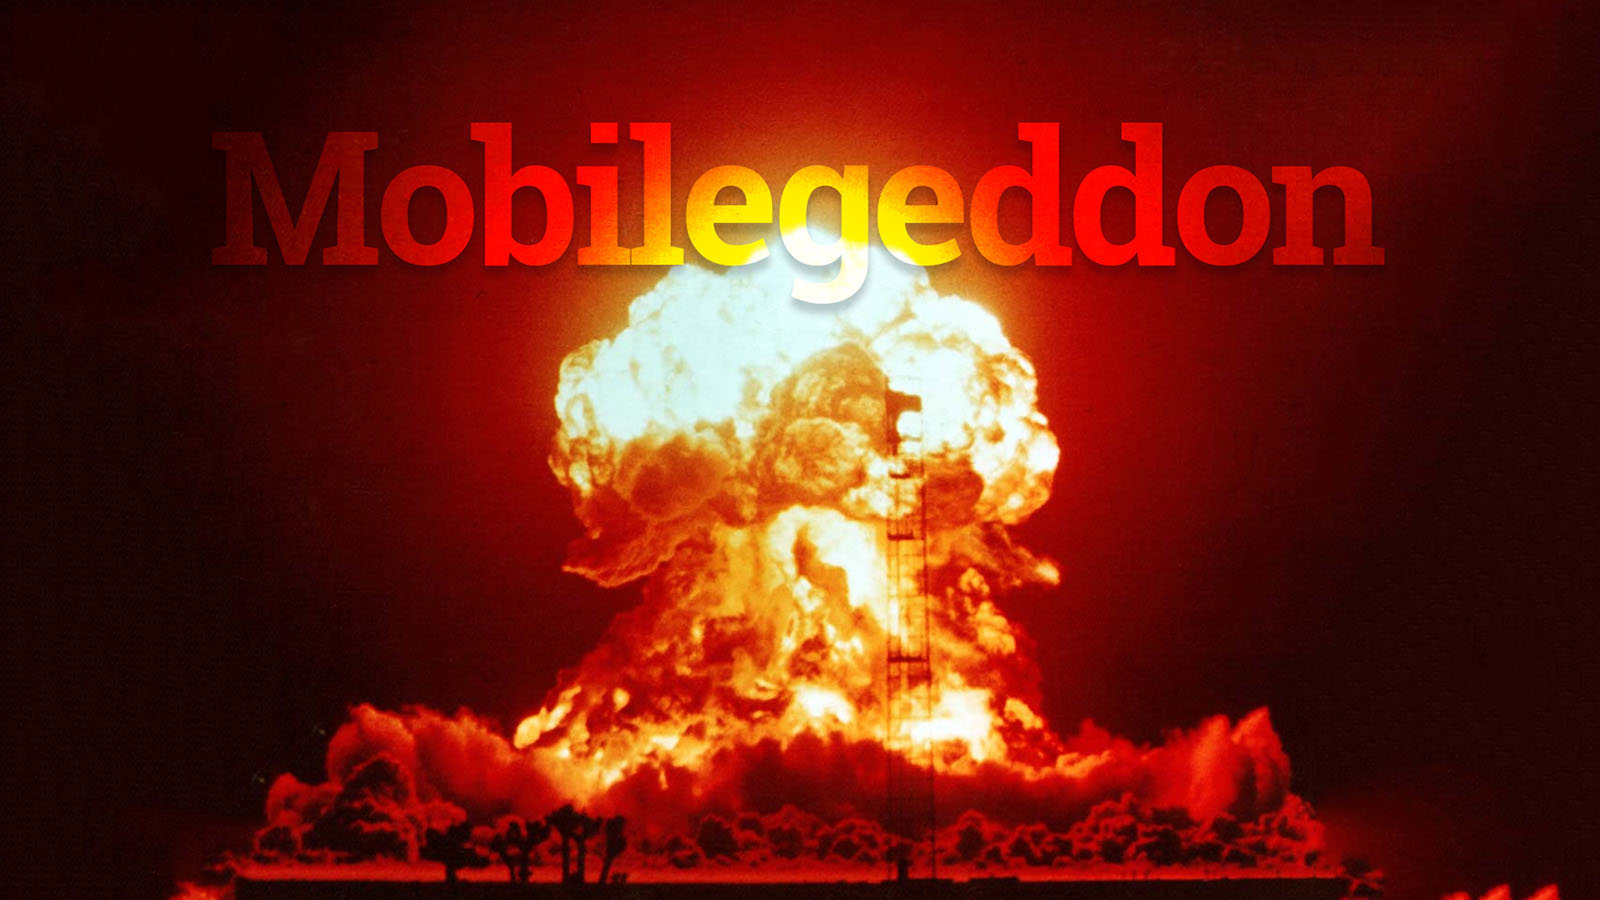 A nuclear explosion accompanied by the word: Mobilegeddon - a compound word of Mobile and armageddon.